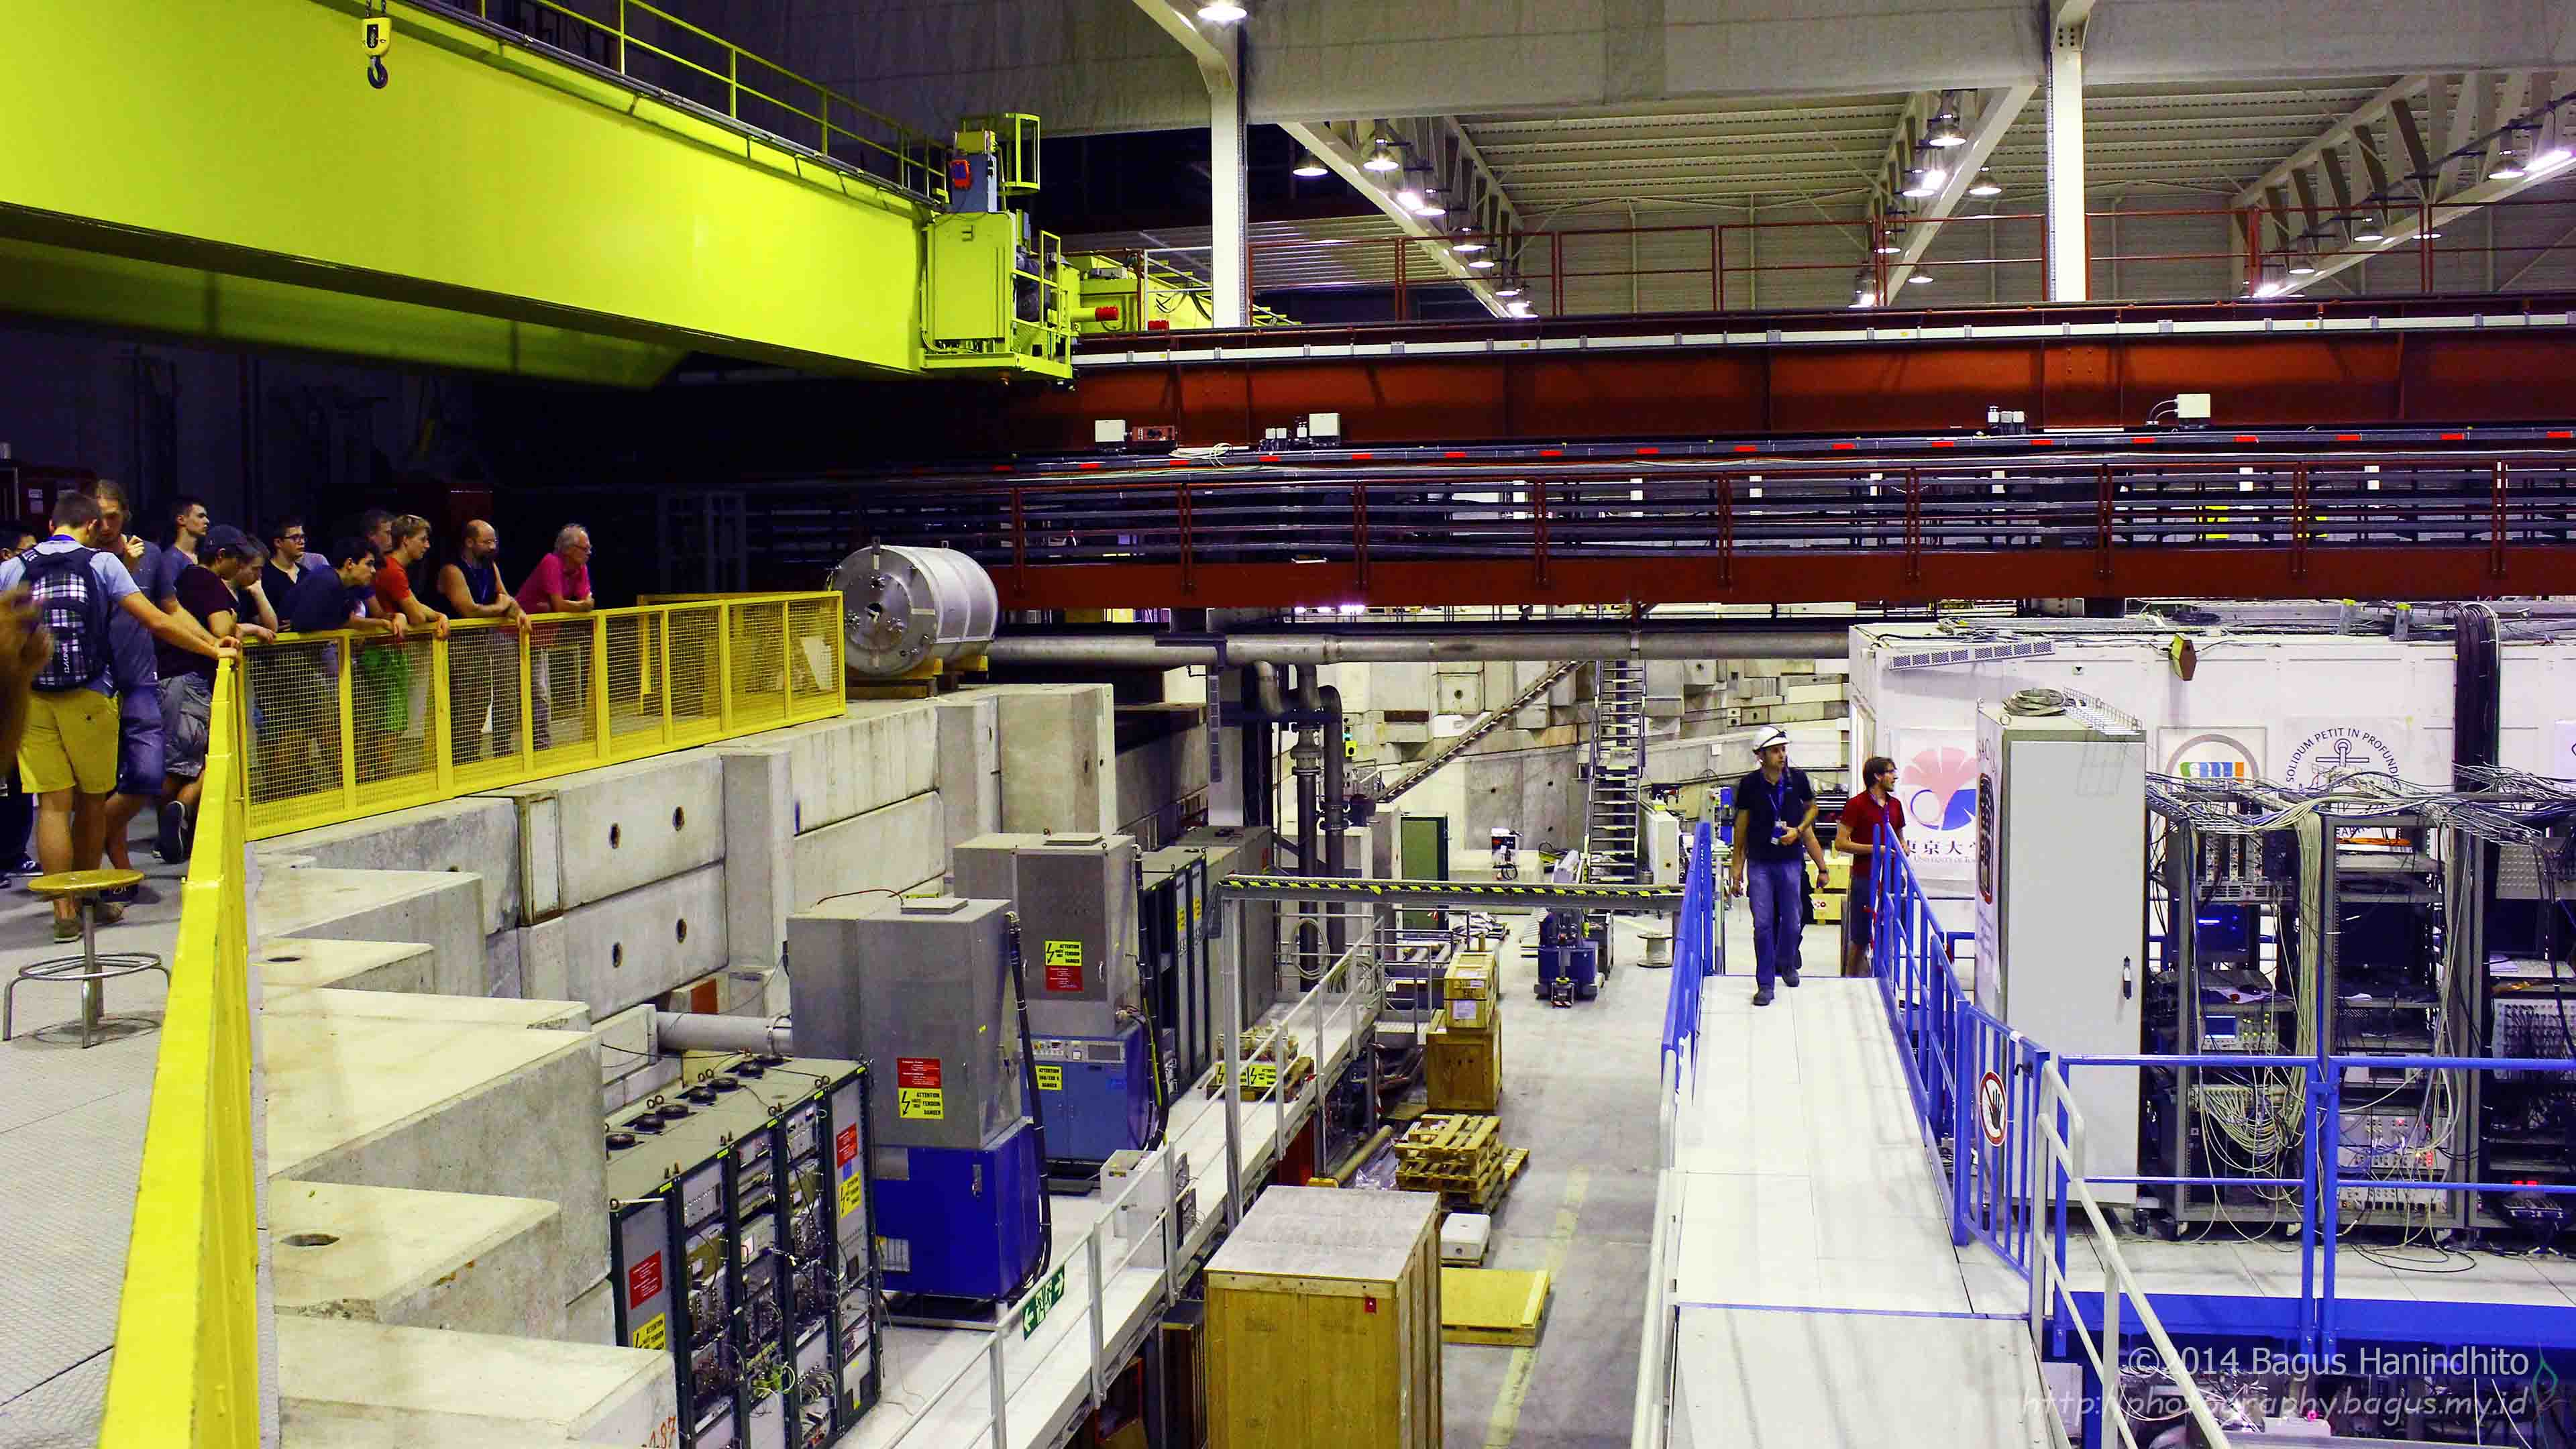 Summer Students were observing the Antiproton Decelerator (AD) facilities at CERN.